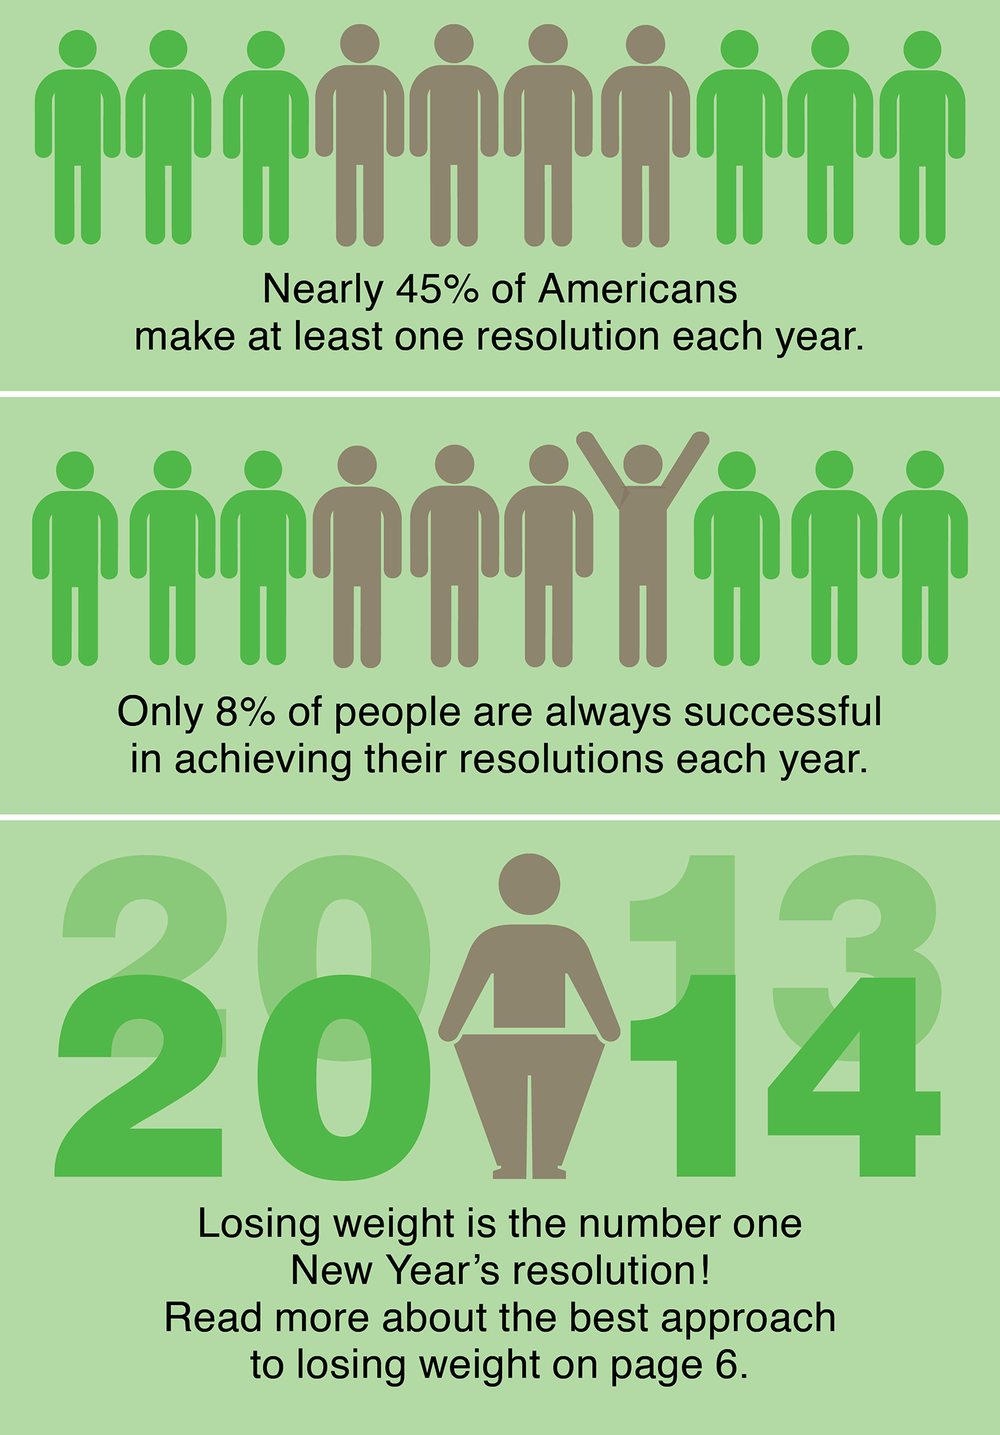 Infographic for article on New Year's resolutions